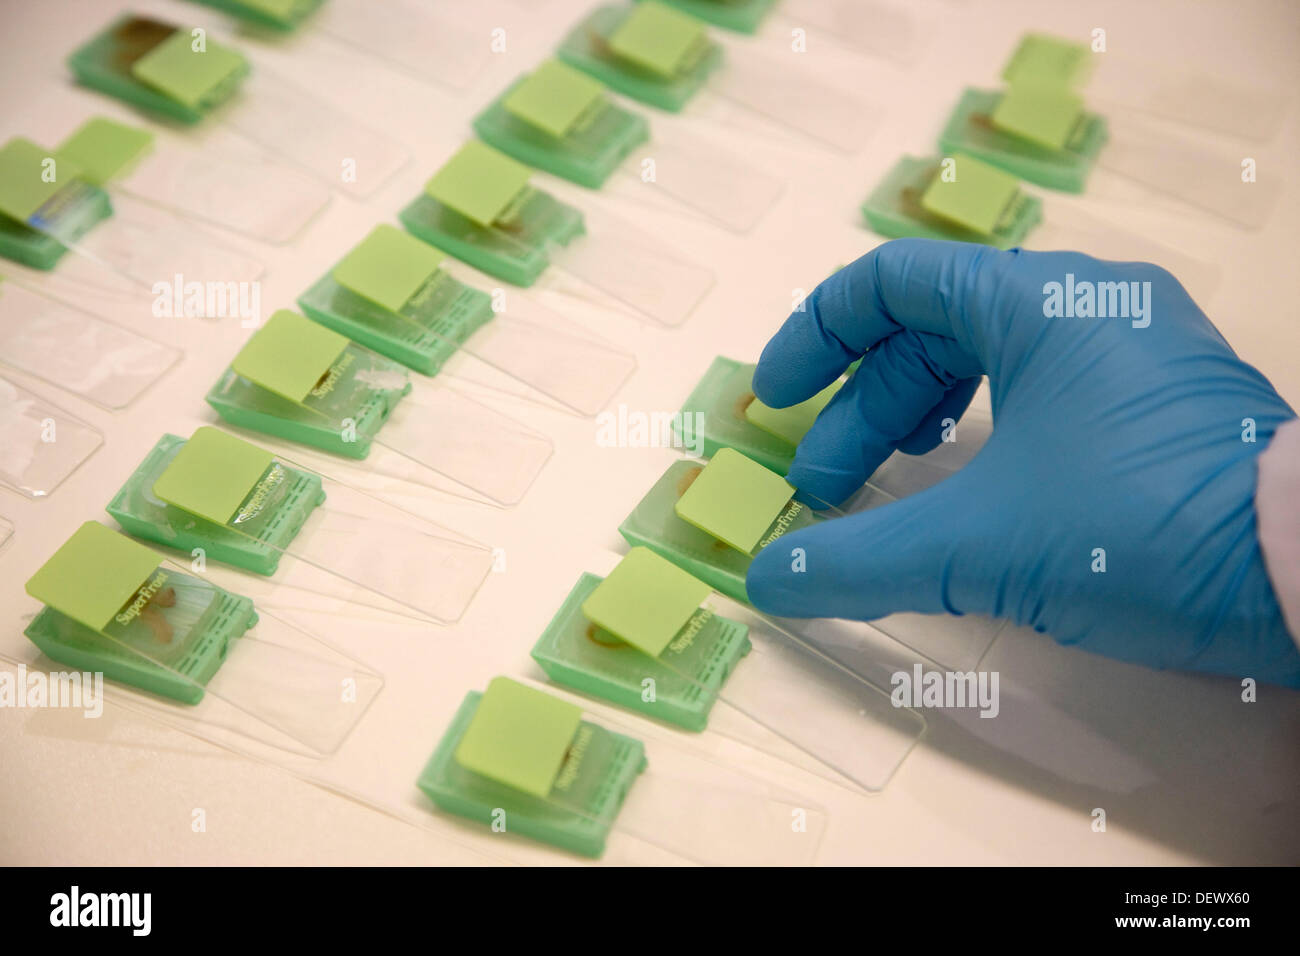 Microscope slides, Laboratory of Pathological anatomy, Departamento de Producción y Sanidad Animal, Neiker Tecnalia, Stock Photo